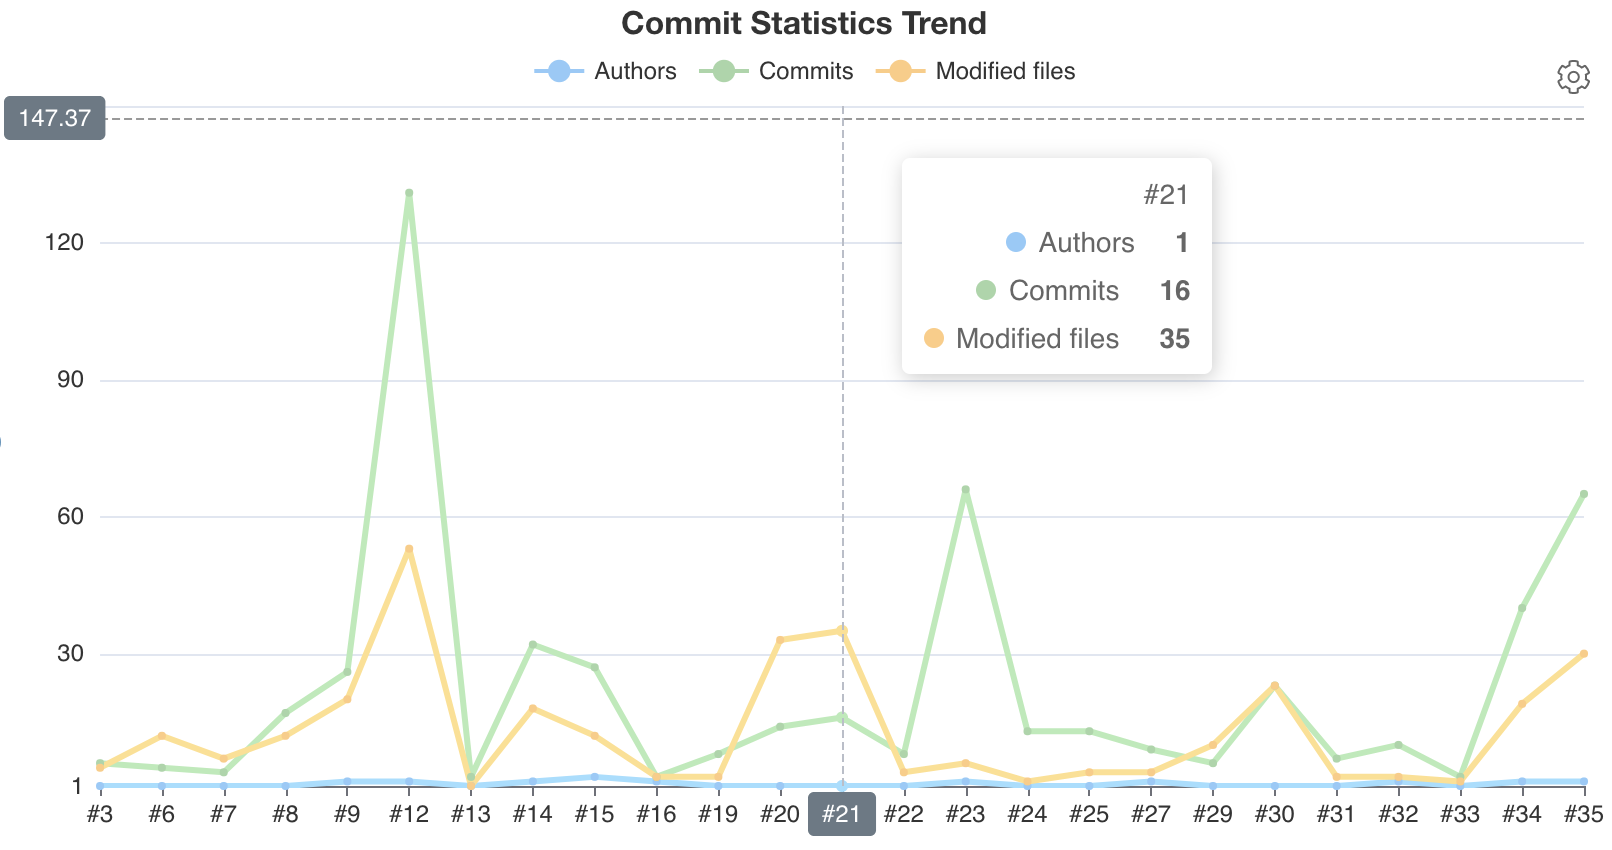 Author, commit, and modified files count trend chart